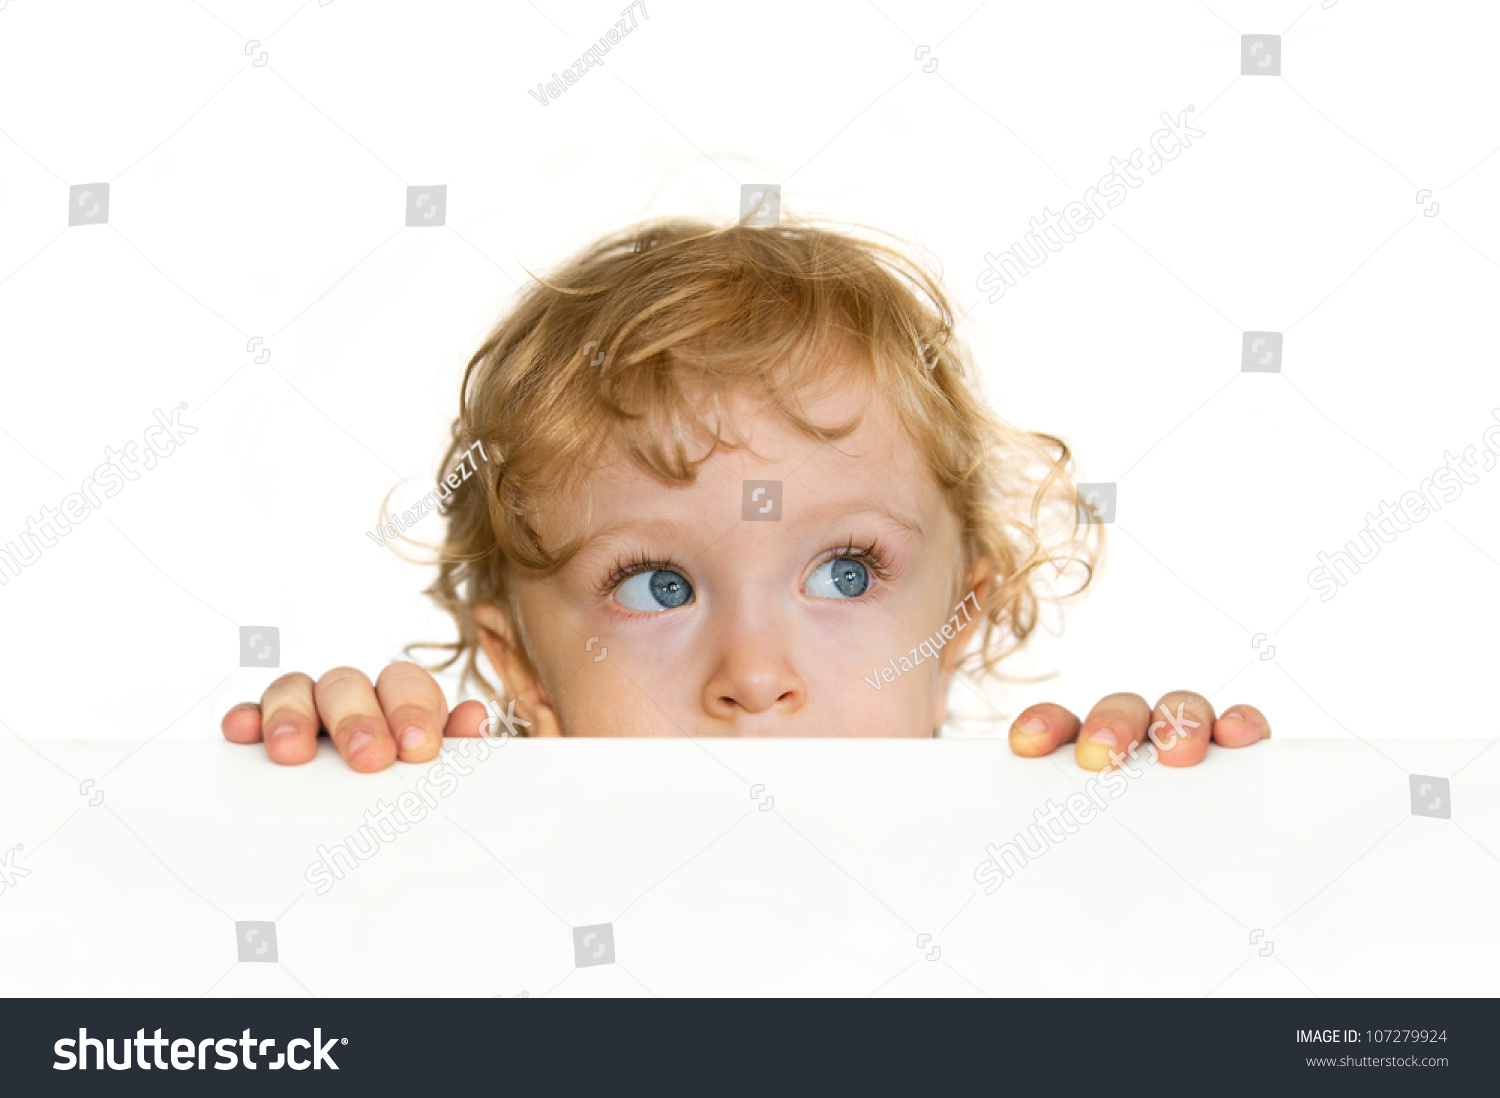 Curious Cute Child Looking Over Table Stock Photo